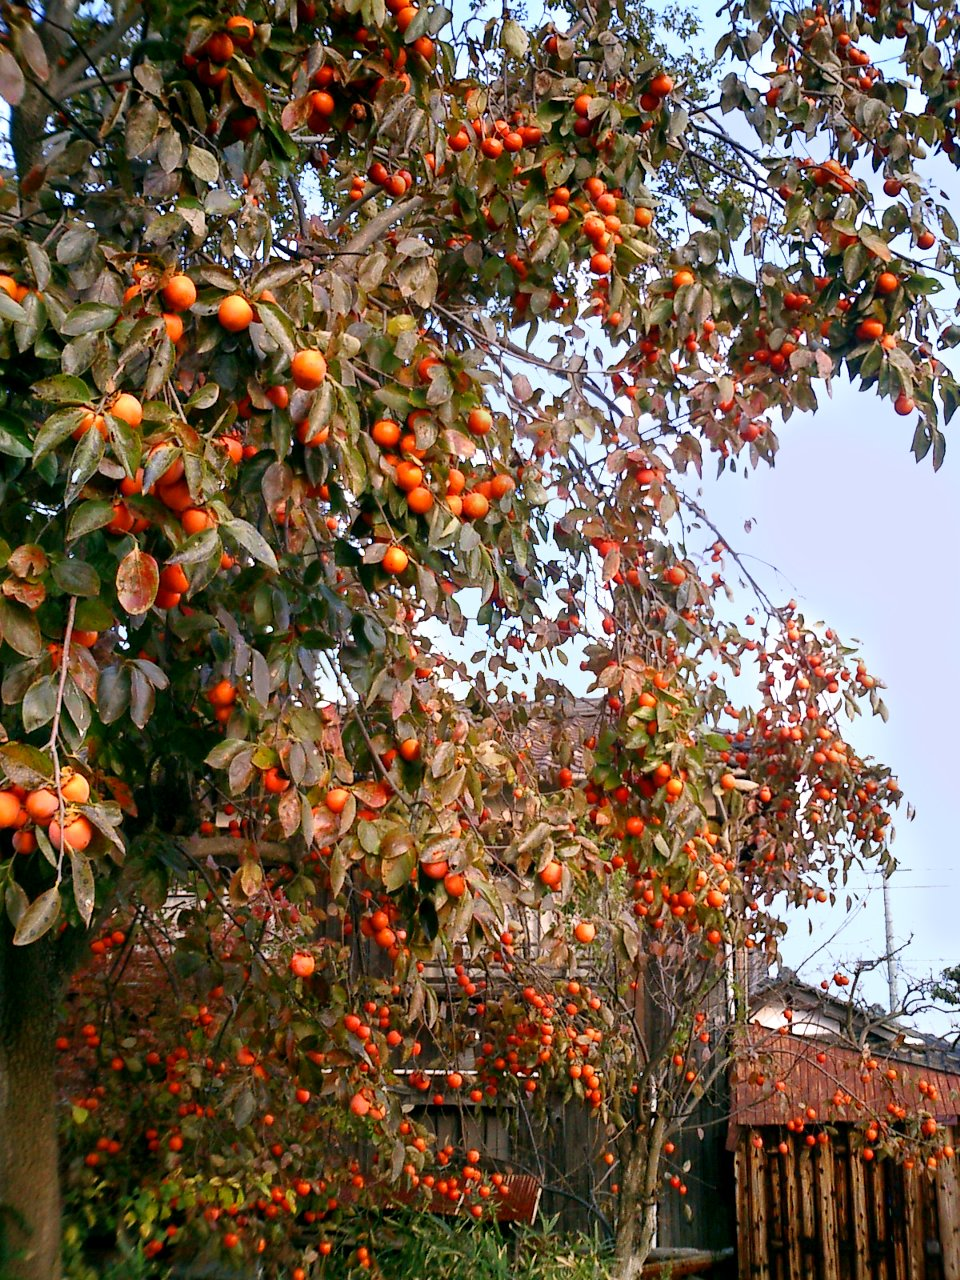 Persimmon Tree loaded with fruit